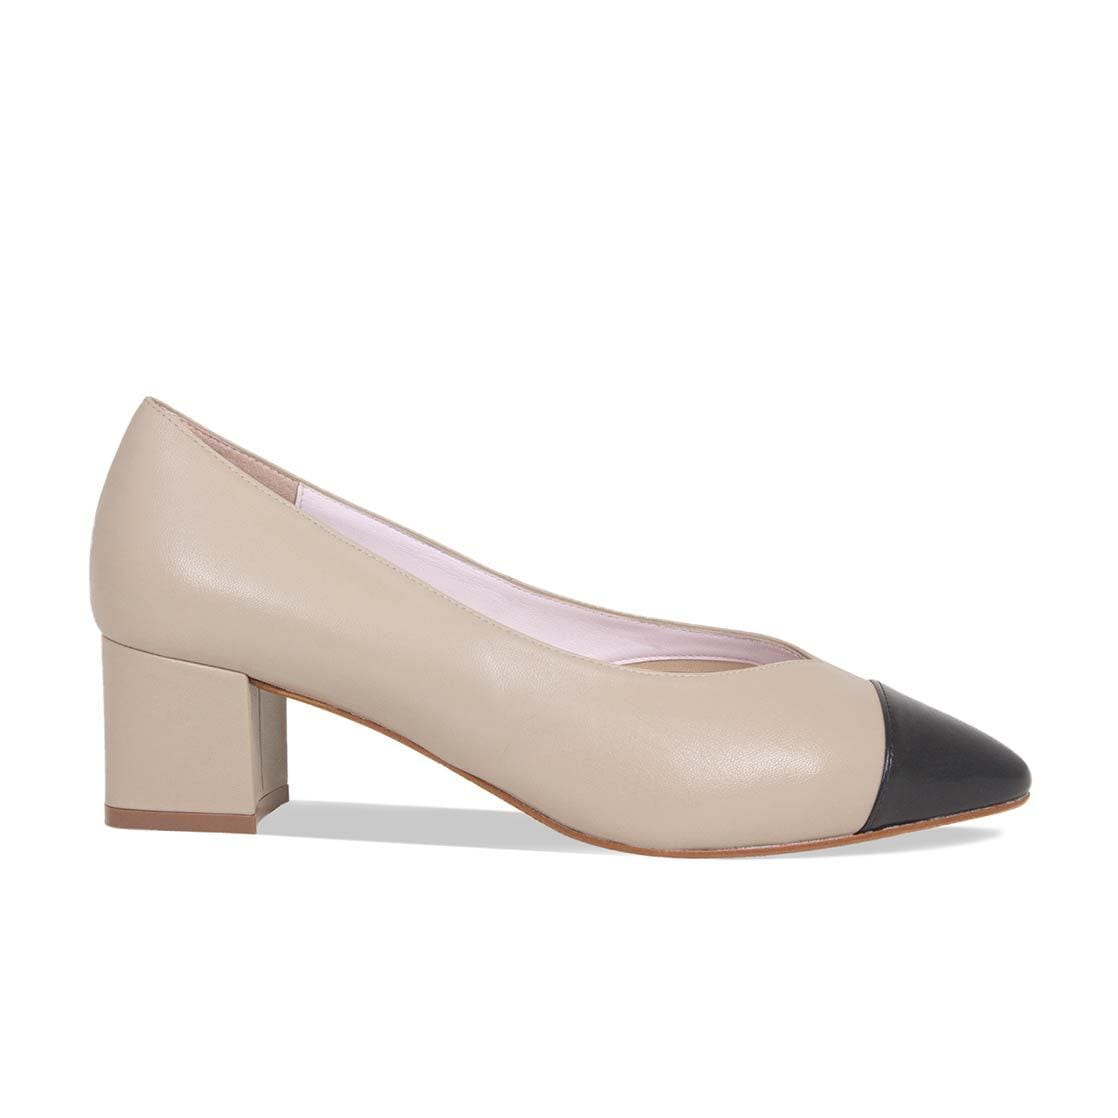 Nude & Black Leather Block Heeled Pumps